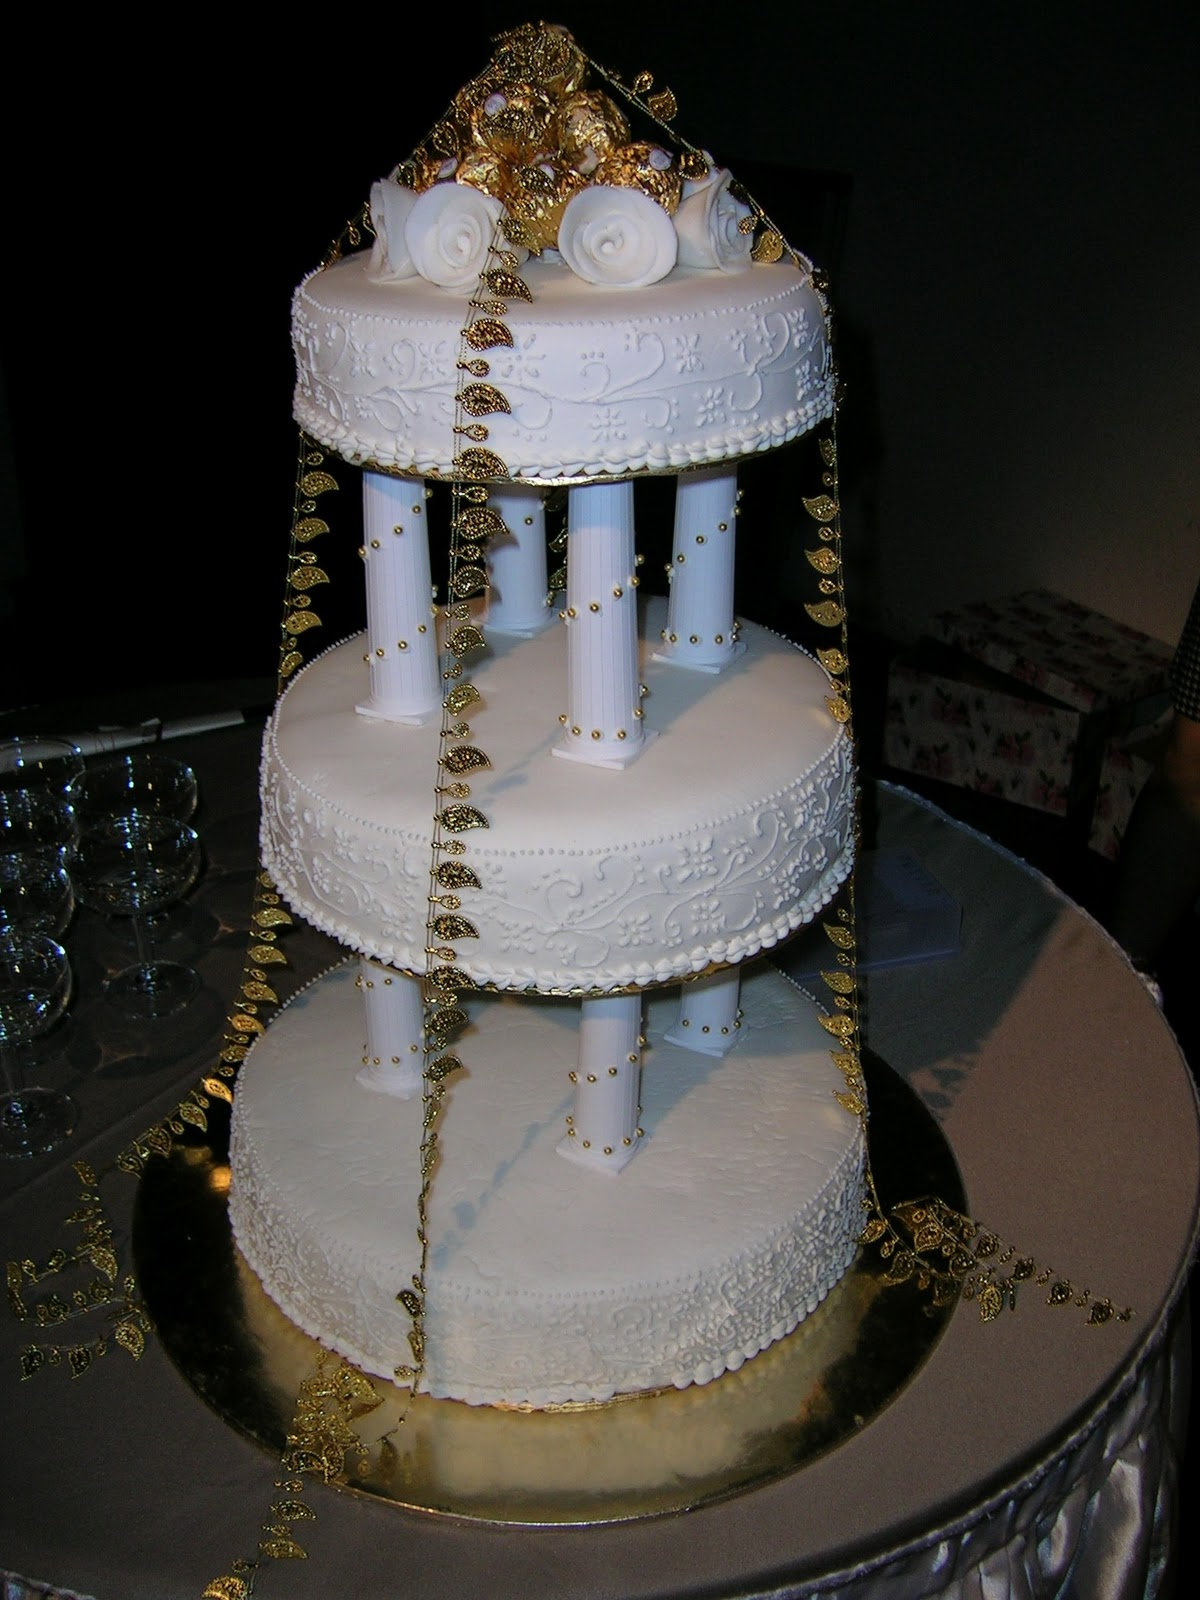 wedding cakes remind me of